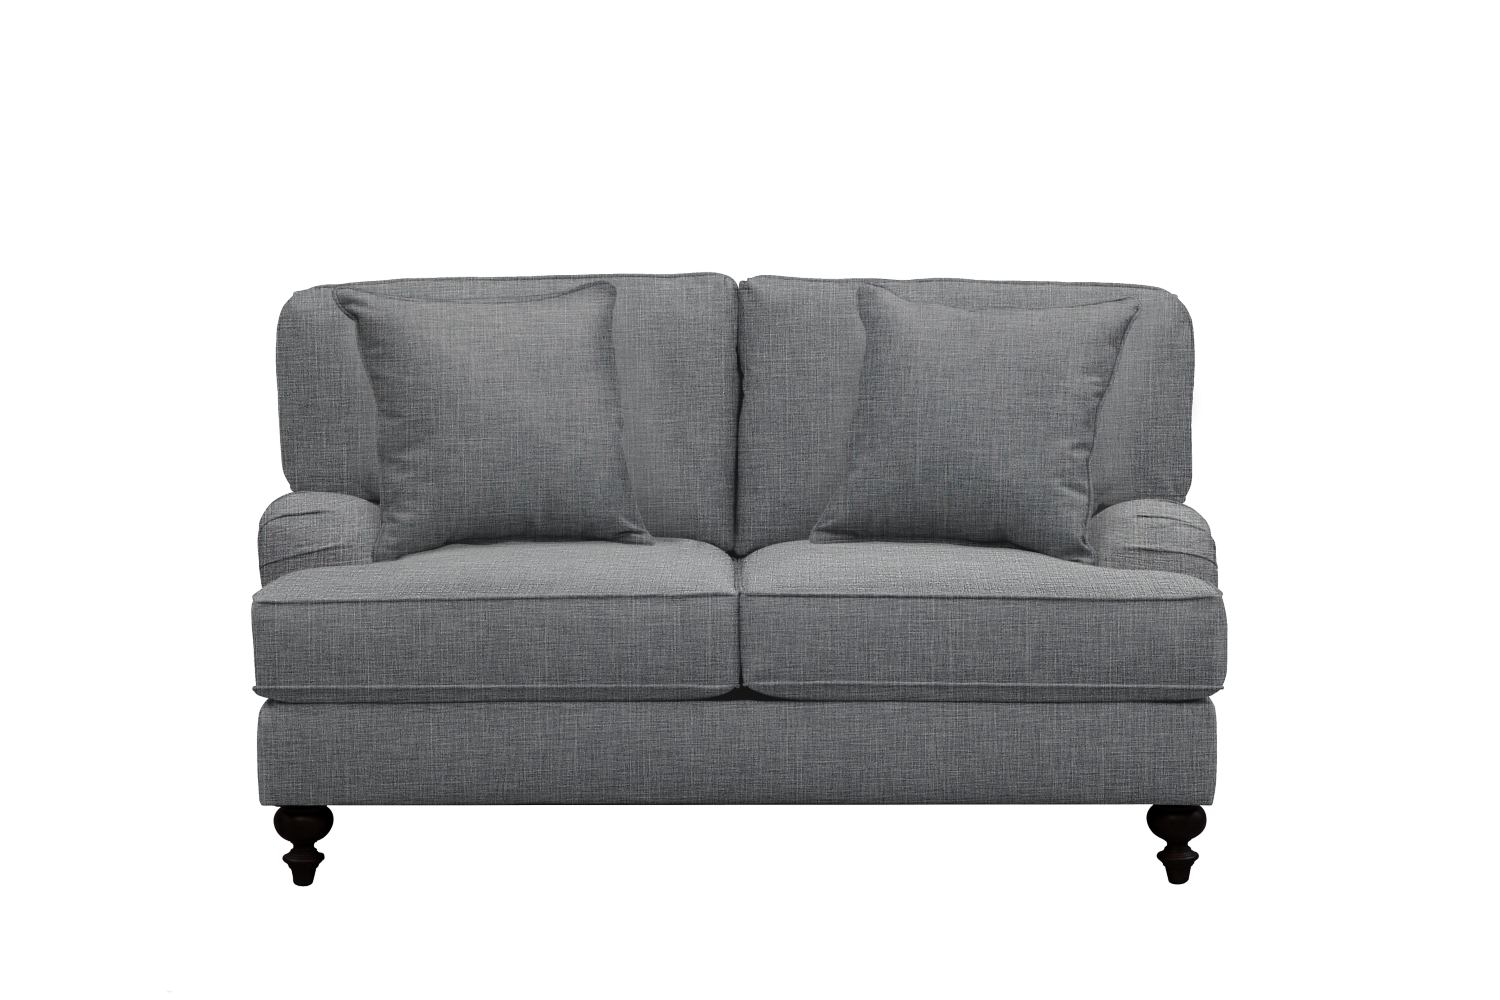 "Living Room Furniture - Avery English Arm Sofa 62"" Milford II Charcoal w/ Milford II Charcoal  Pillow"